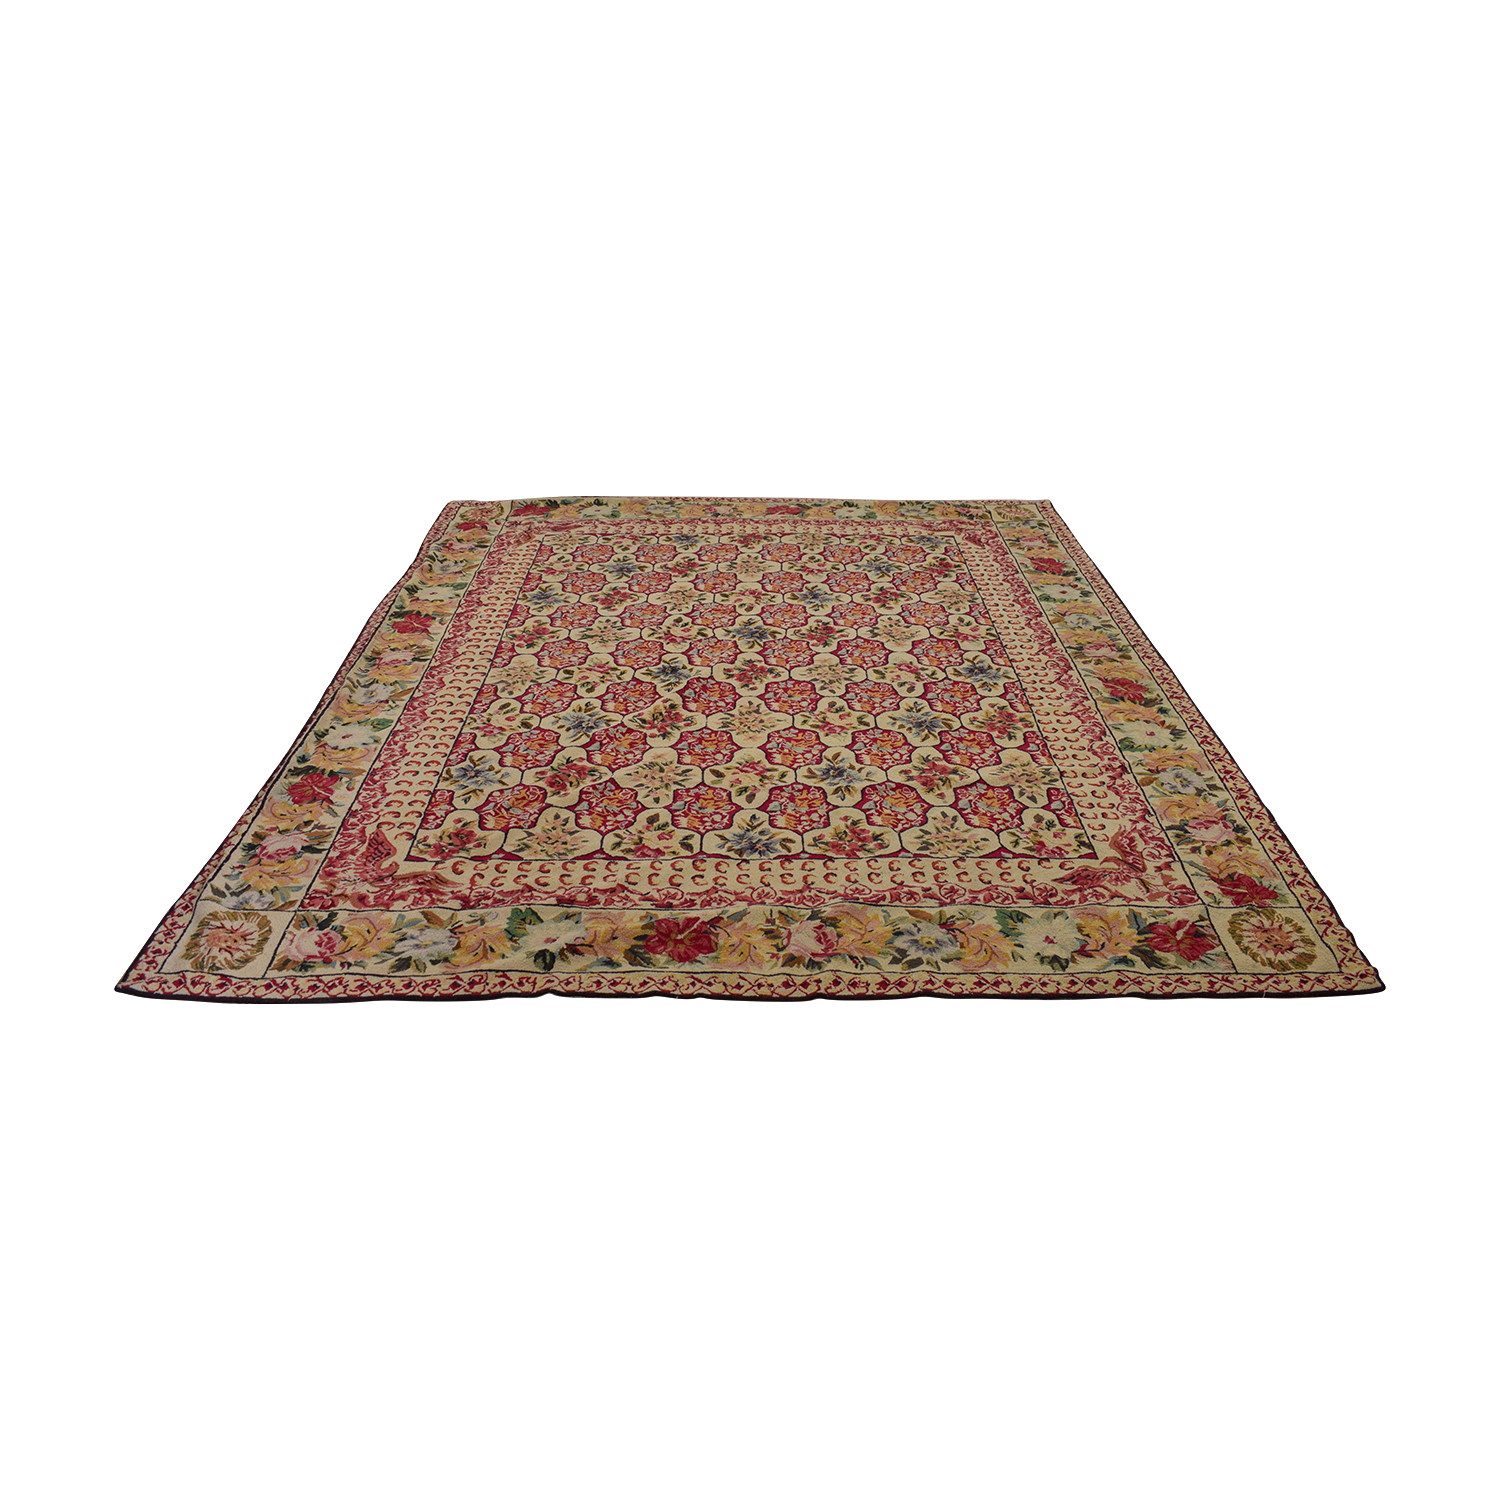 Multi-Color Flowered Area Rug